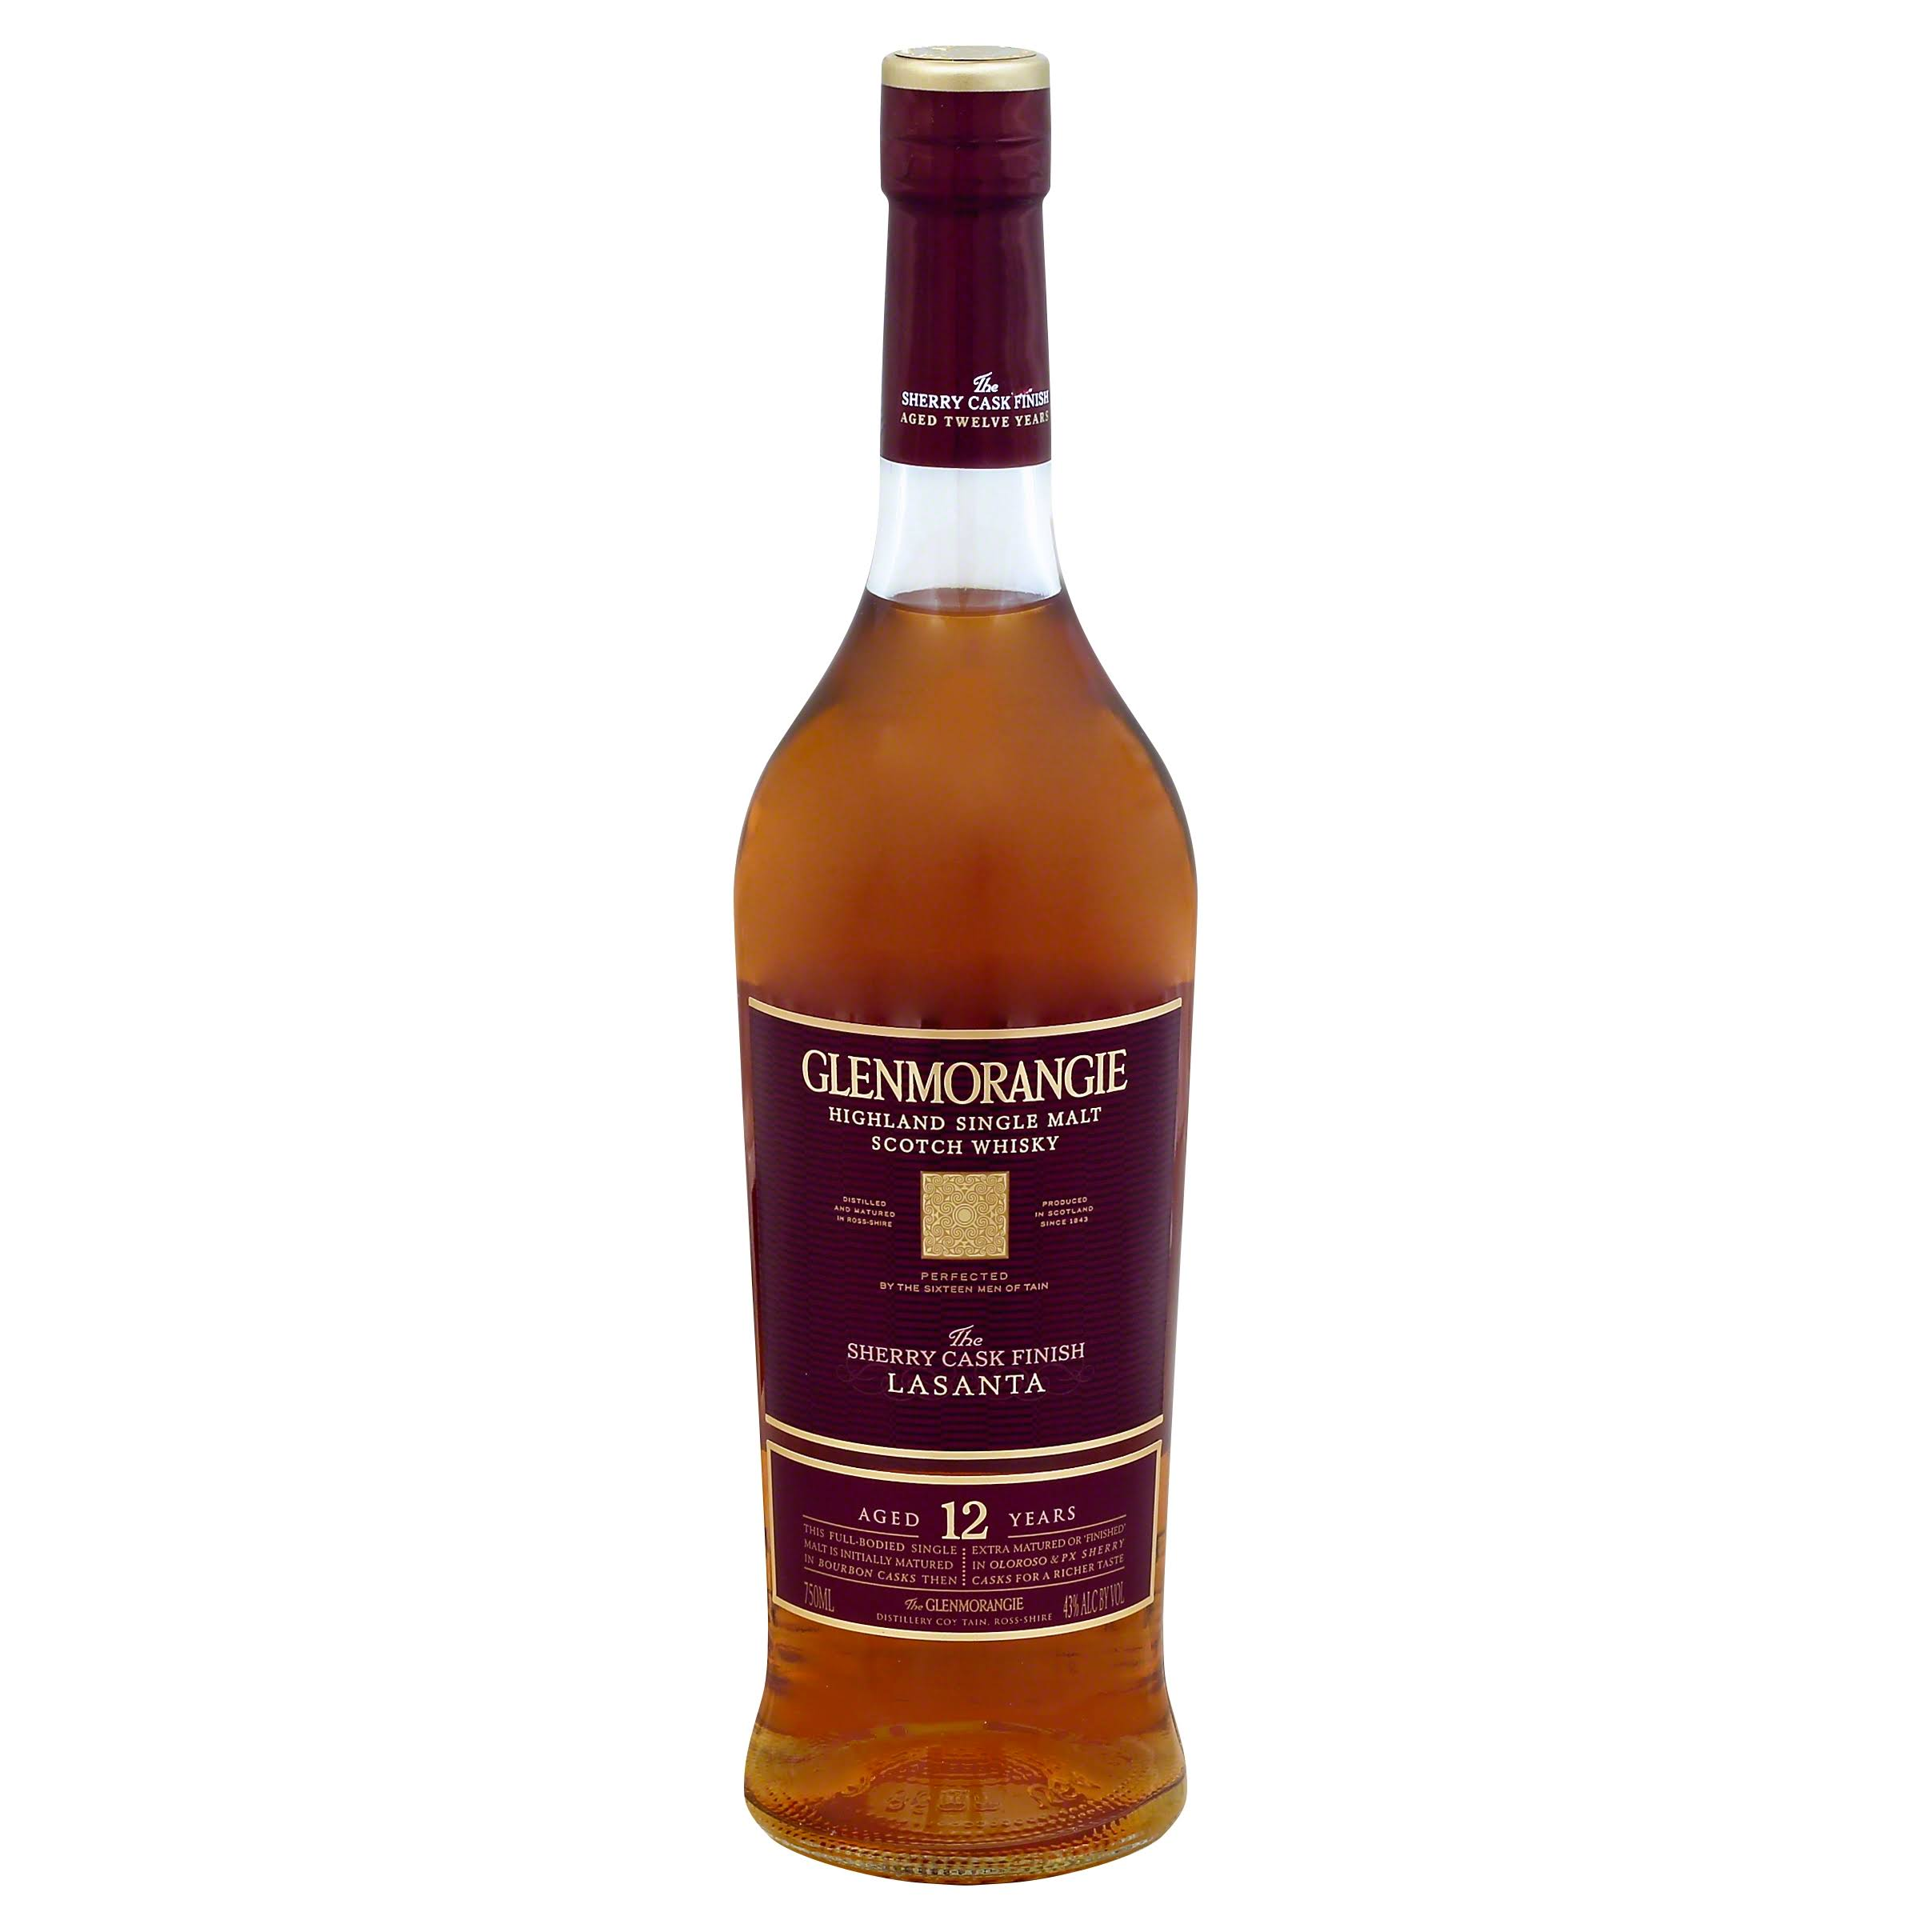 Glenmorangie Whisky, Highland Single Malt Scotch, Lasanta - 750 ml